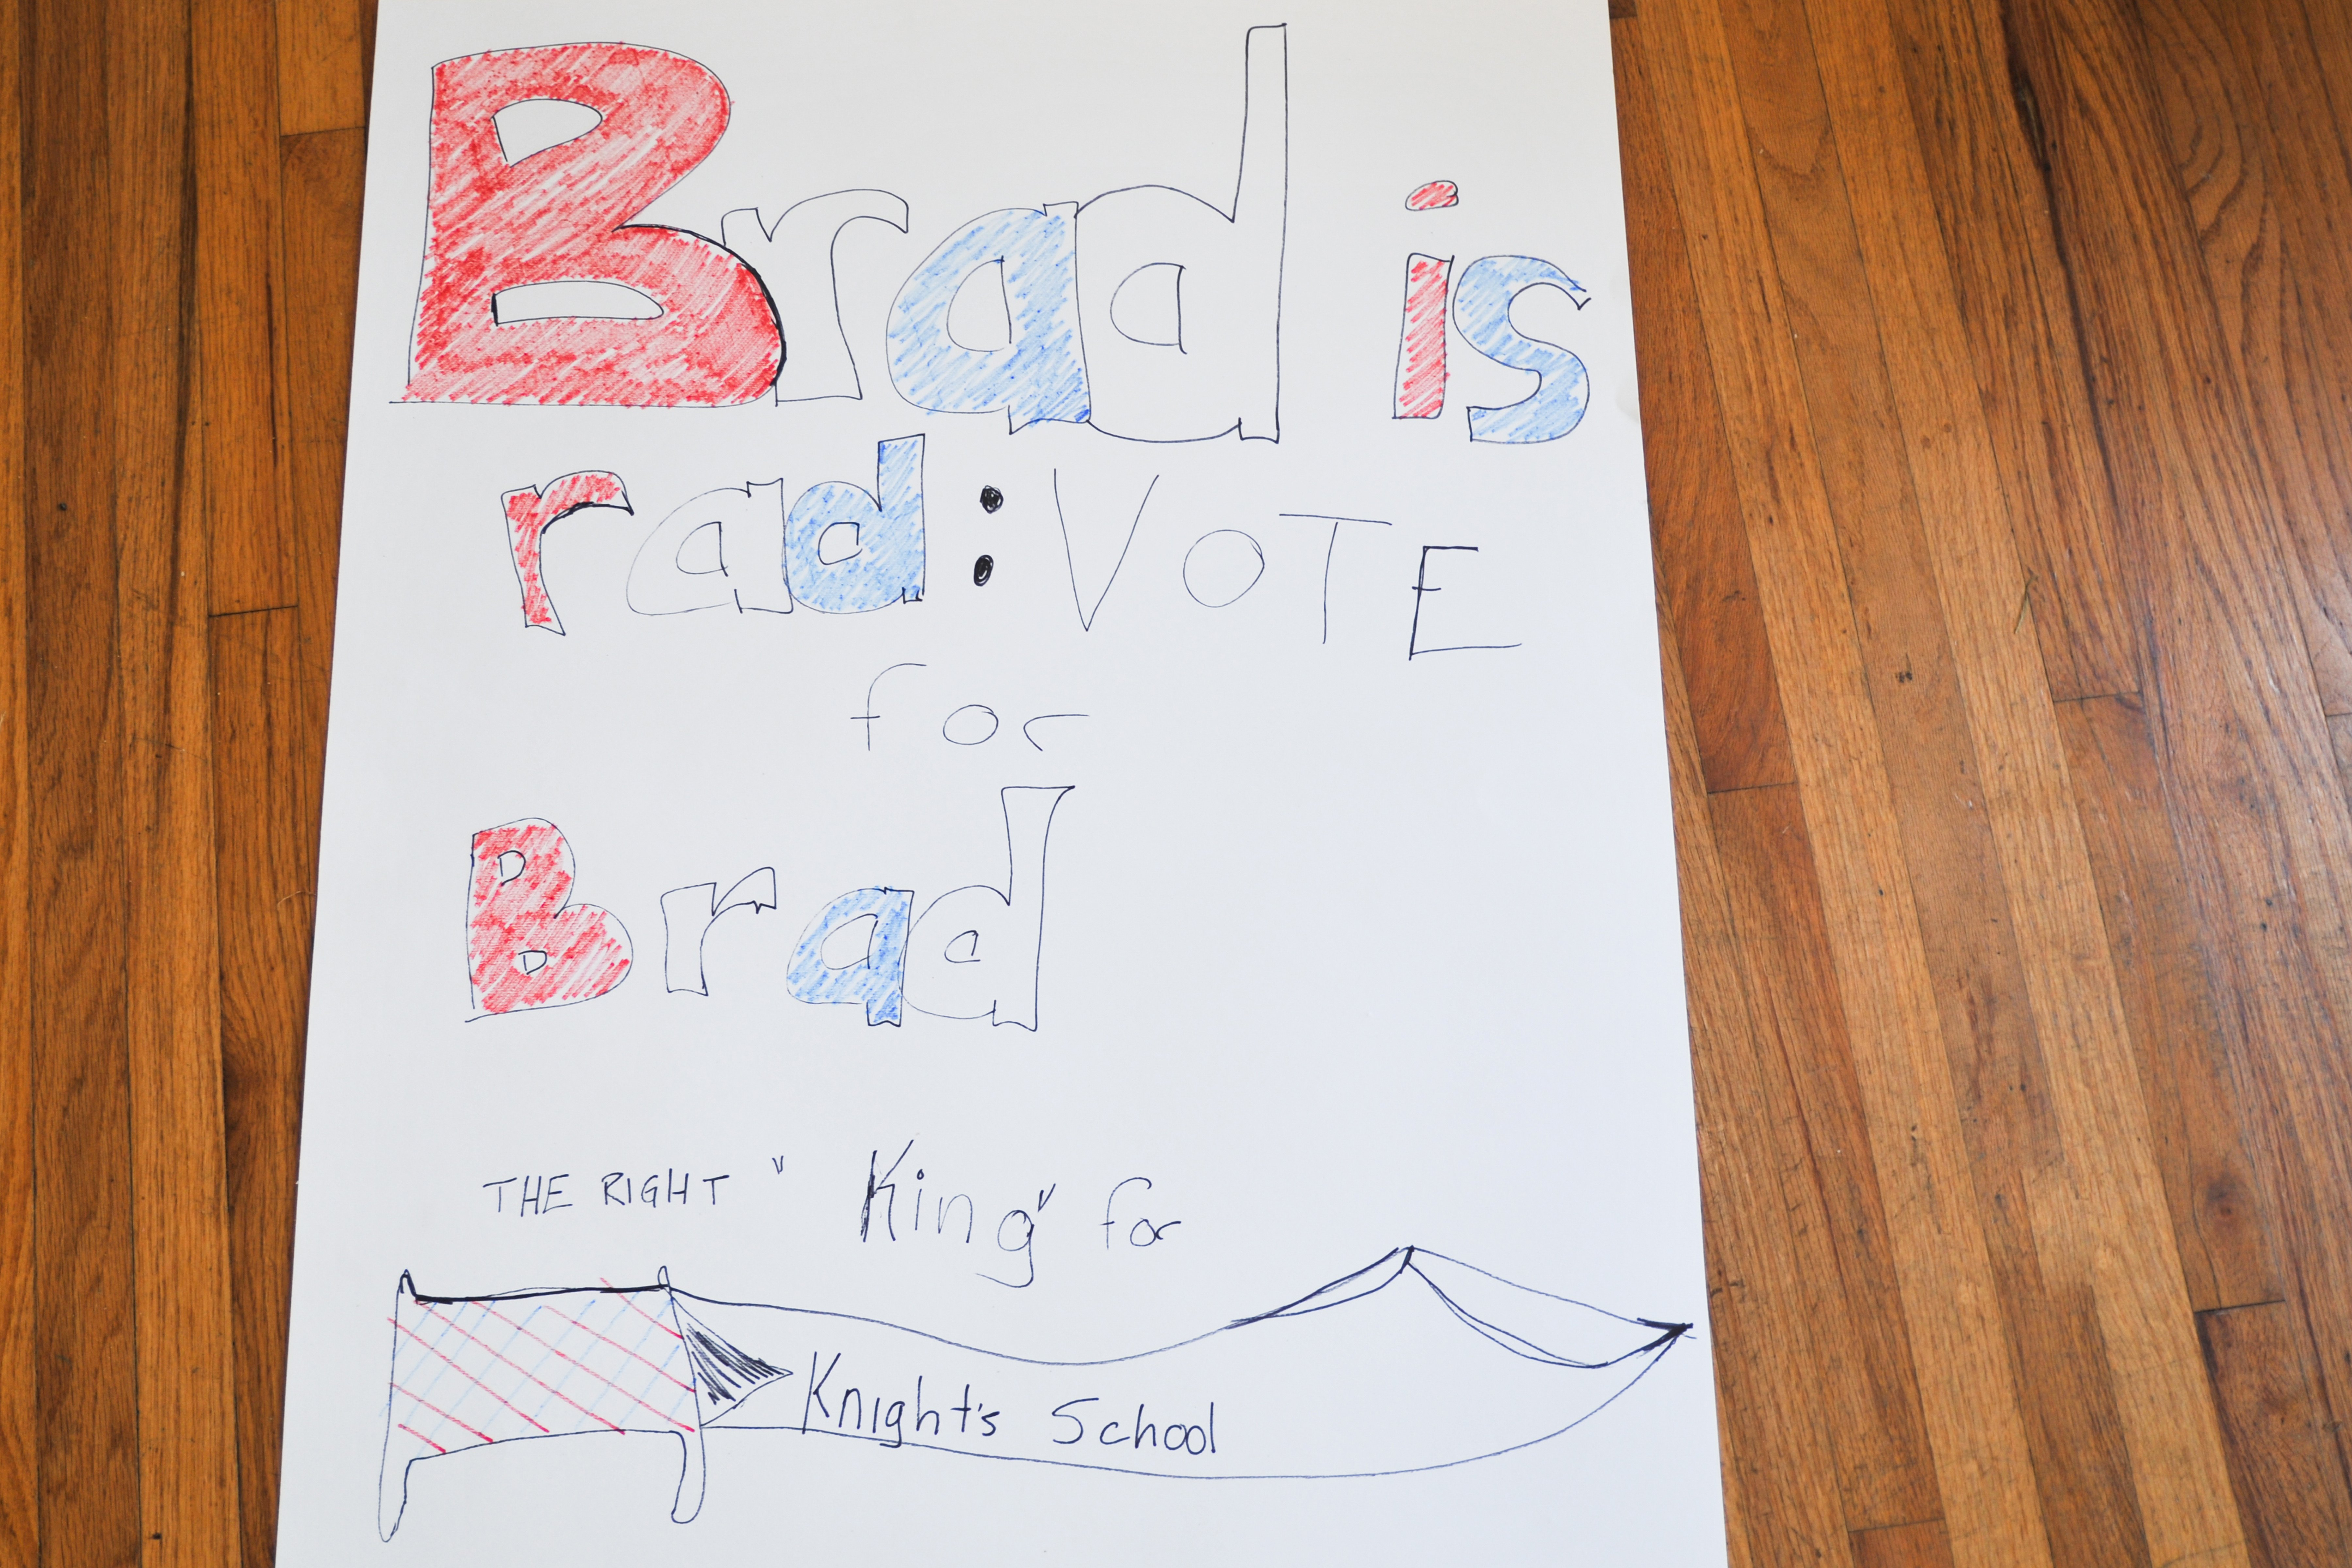 How to Make a Campaign Poster for Kids (with Pictures)   eHow Hgtv Home Design Html on tammy name design, kitchen design, cottage style home design, encore home design, living home design, home decor design, hilary farr home design, house design, taniya nayak home design, architectural digest home design, martha stewart home design, self-sustaining home design, fireplace ideas product design, novogratz home design, gym architecture design, interior design, logo home design, master bedroom suite design, home depot home design, susan name design,